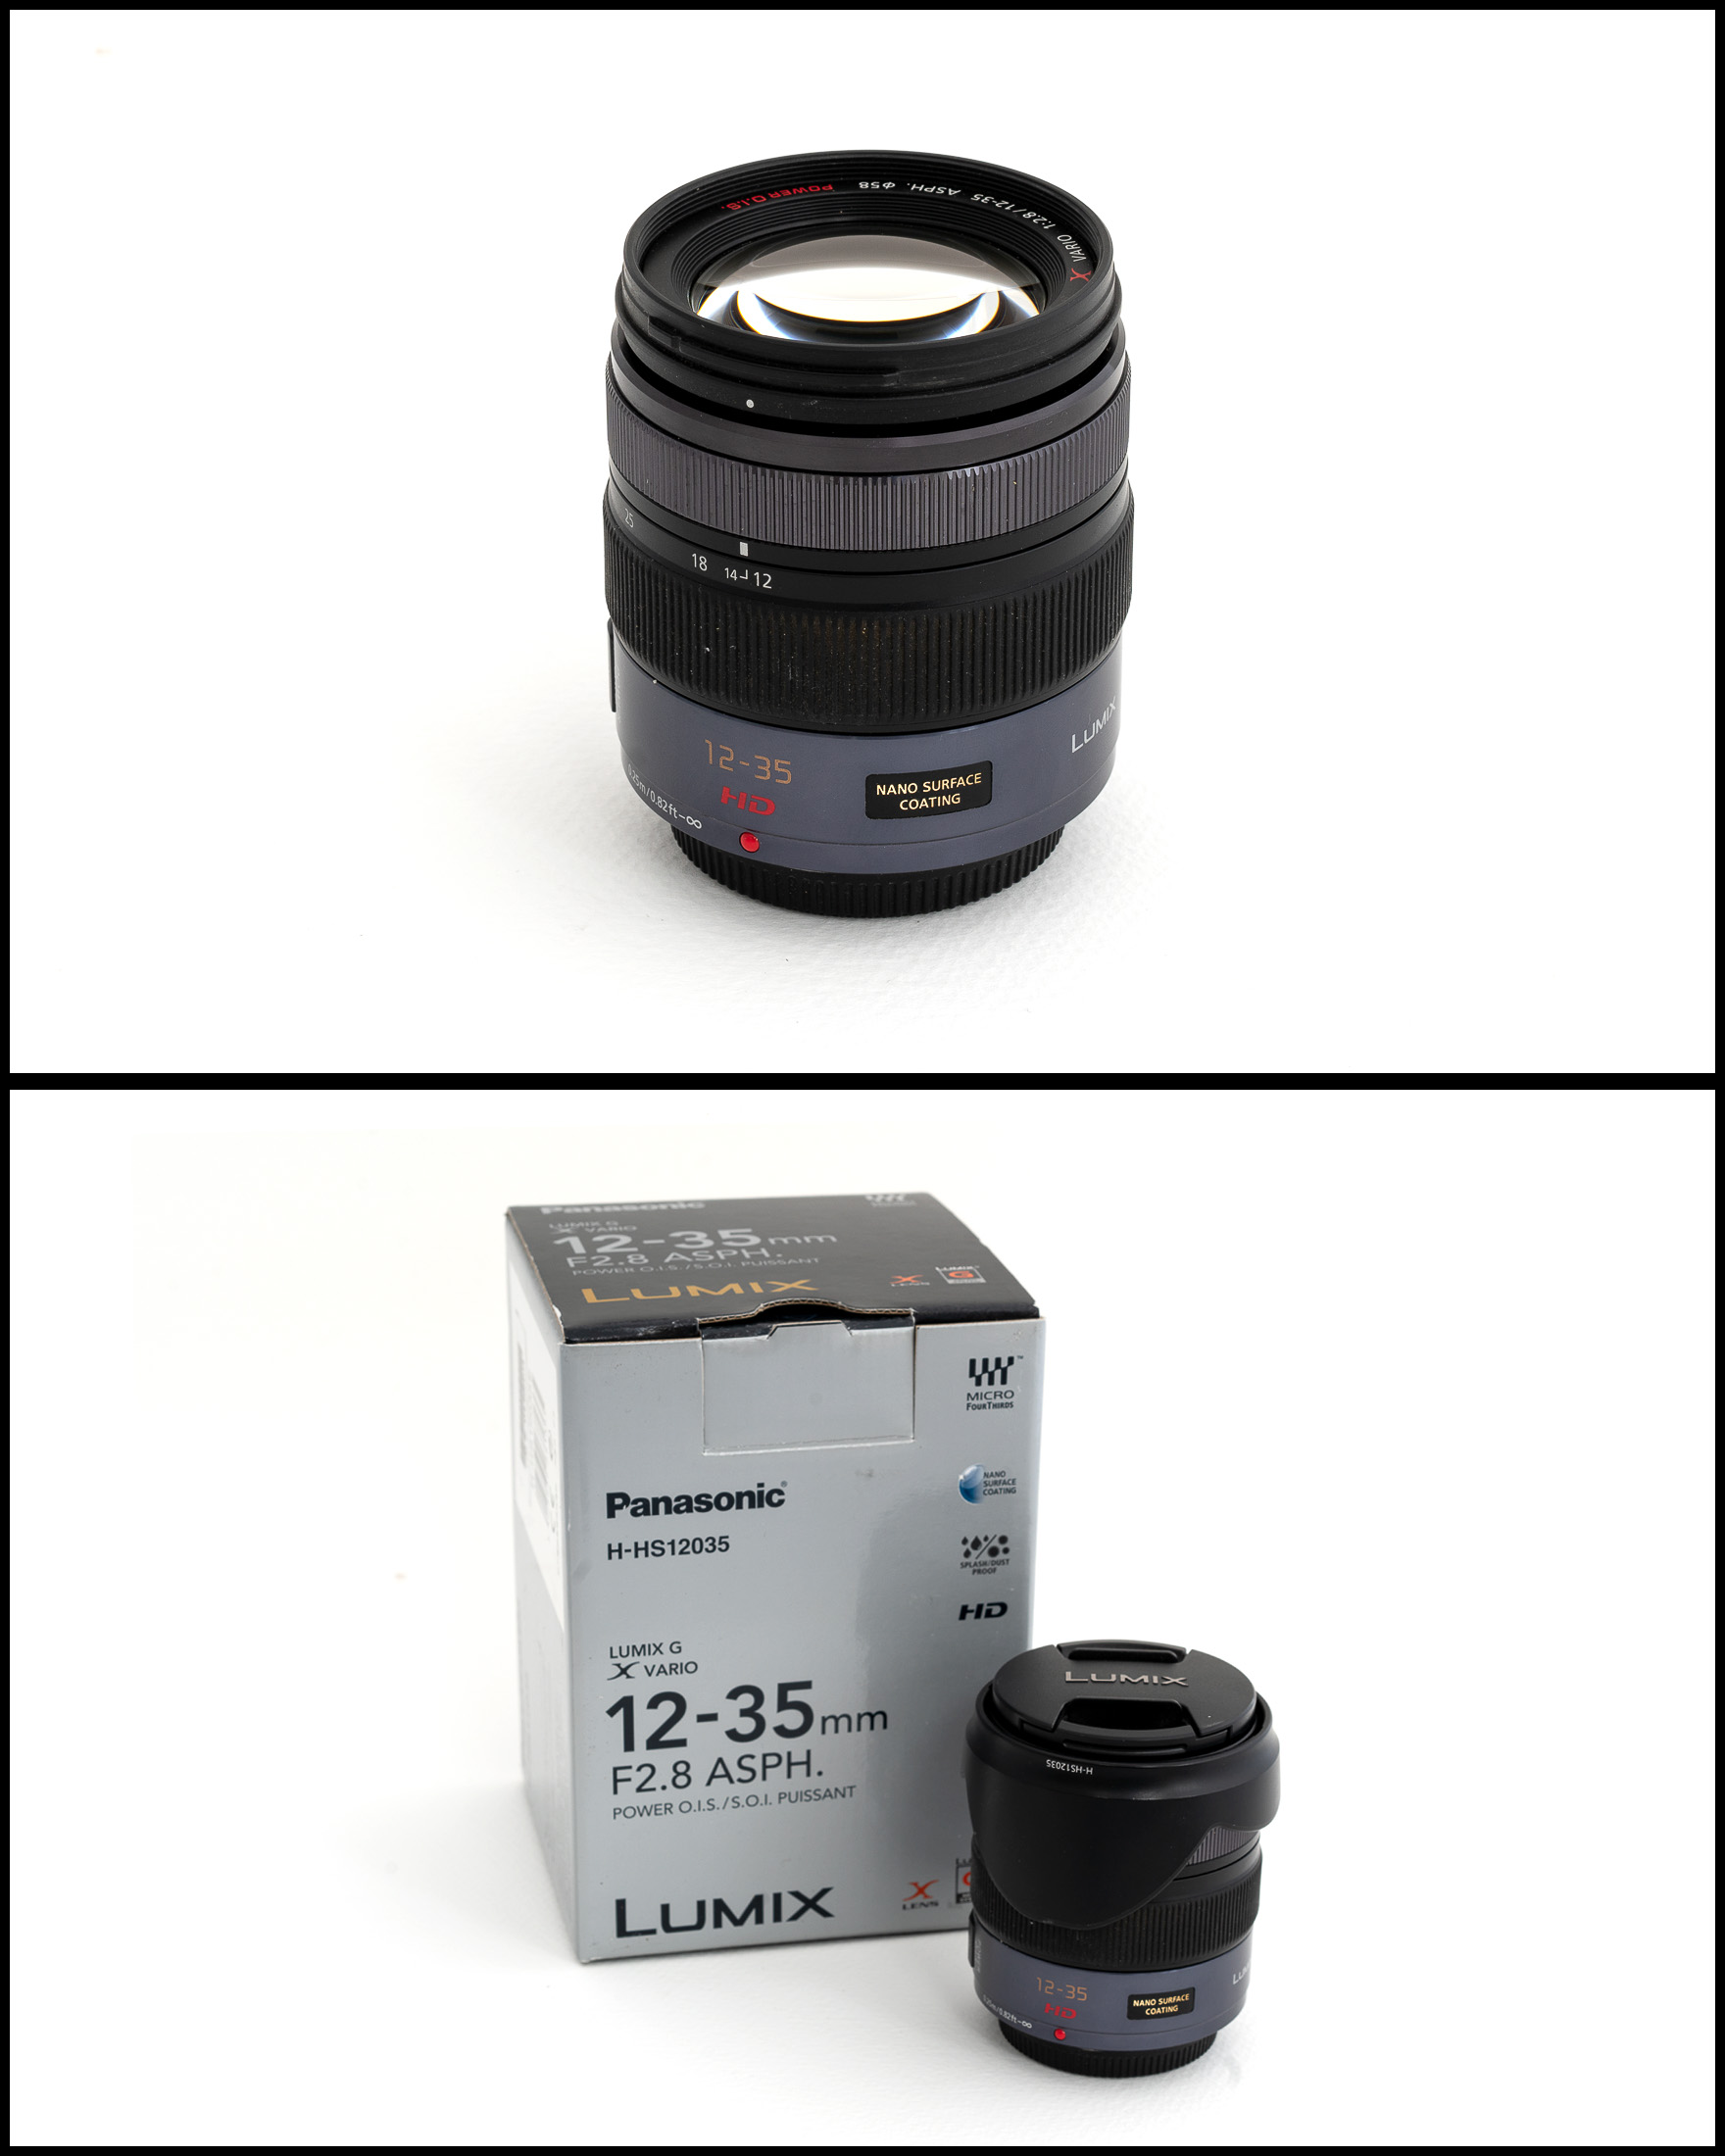 Panasonic 12-35mm f2.8 ASPH Power O.I.S    £400   In excellent condition comes with lens hood, front and rear caps, manual, pouch and original box.